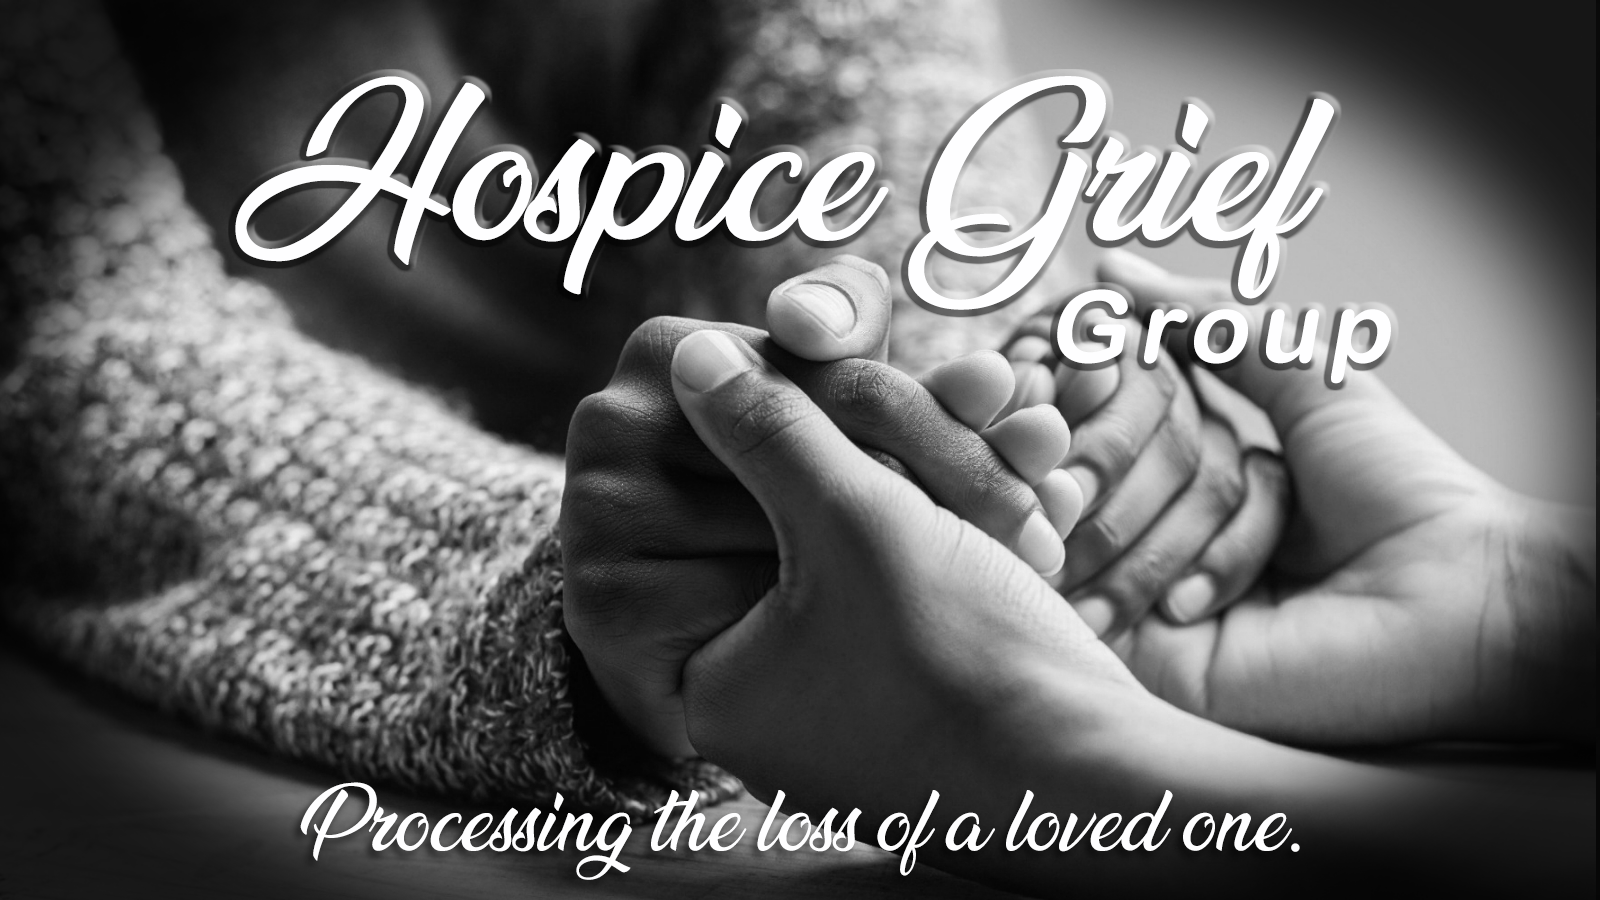 Processing the loss of a loved one. 1st Monday Monthly 12pm @ Refuge Contact: Rev. Tim 843-412-1173